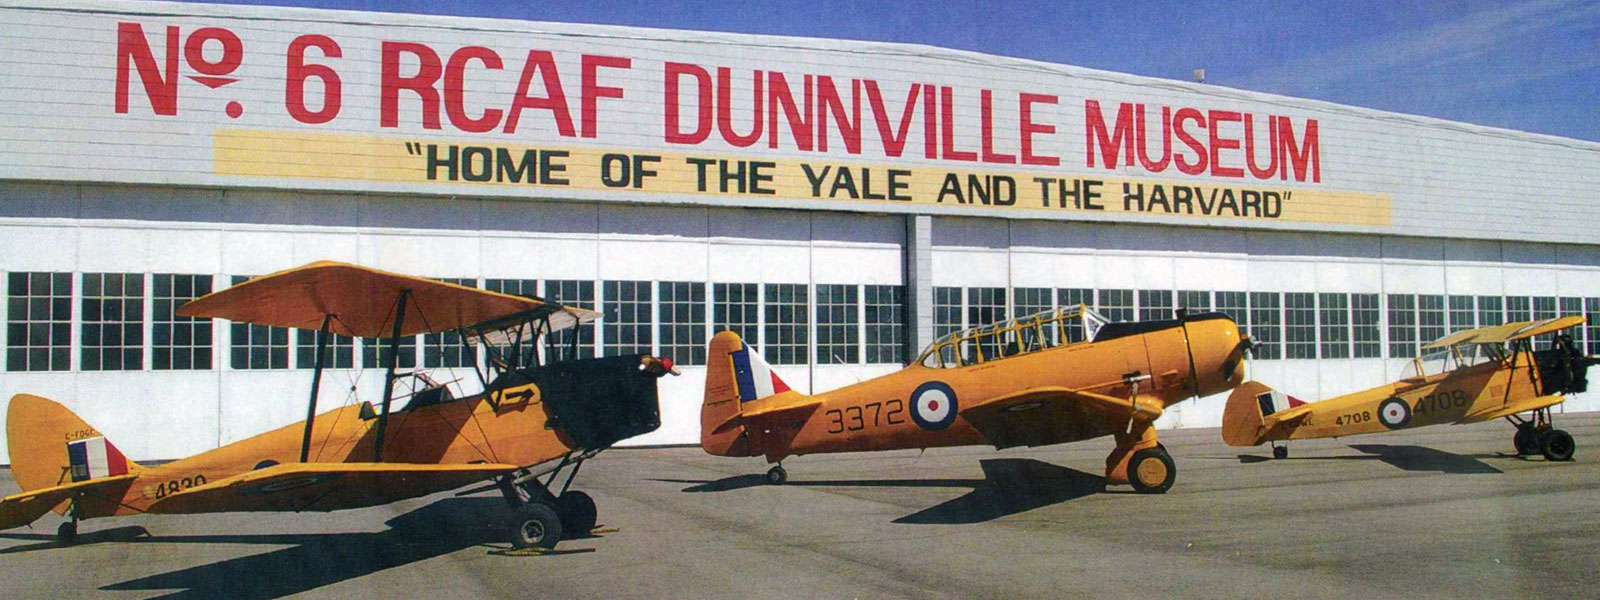 tiger-moth-yale-fleet-finch-airplanes-rcaf-museum-dunnville